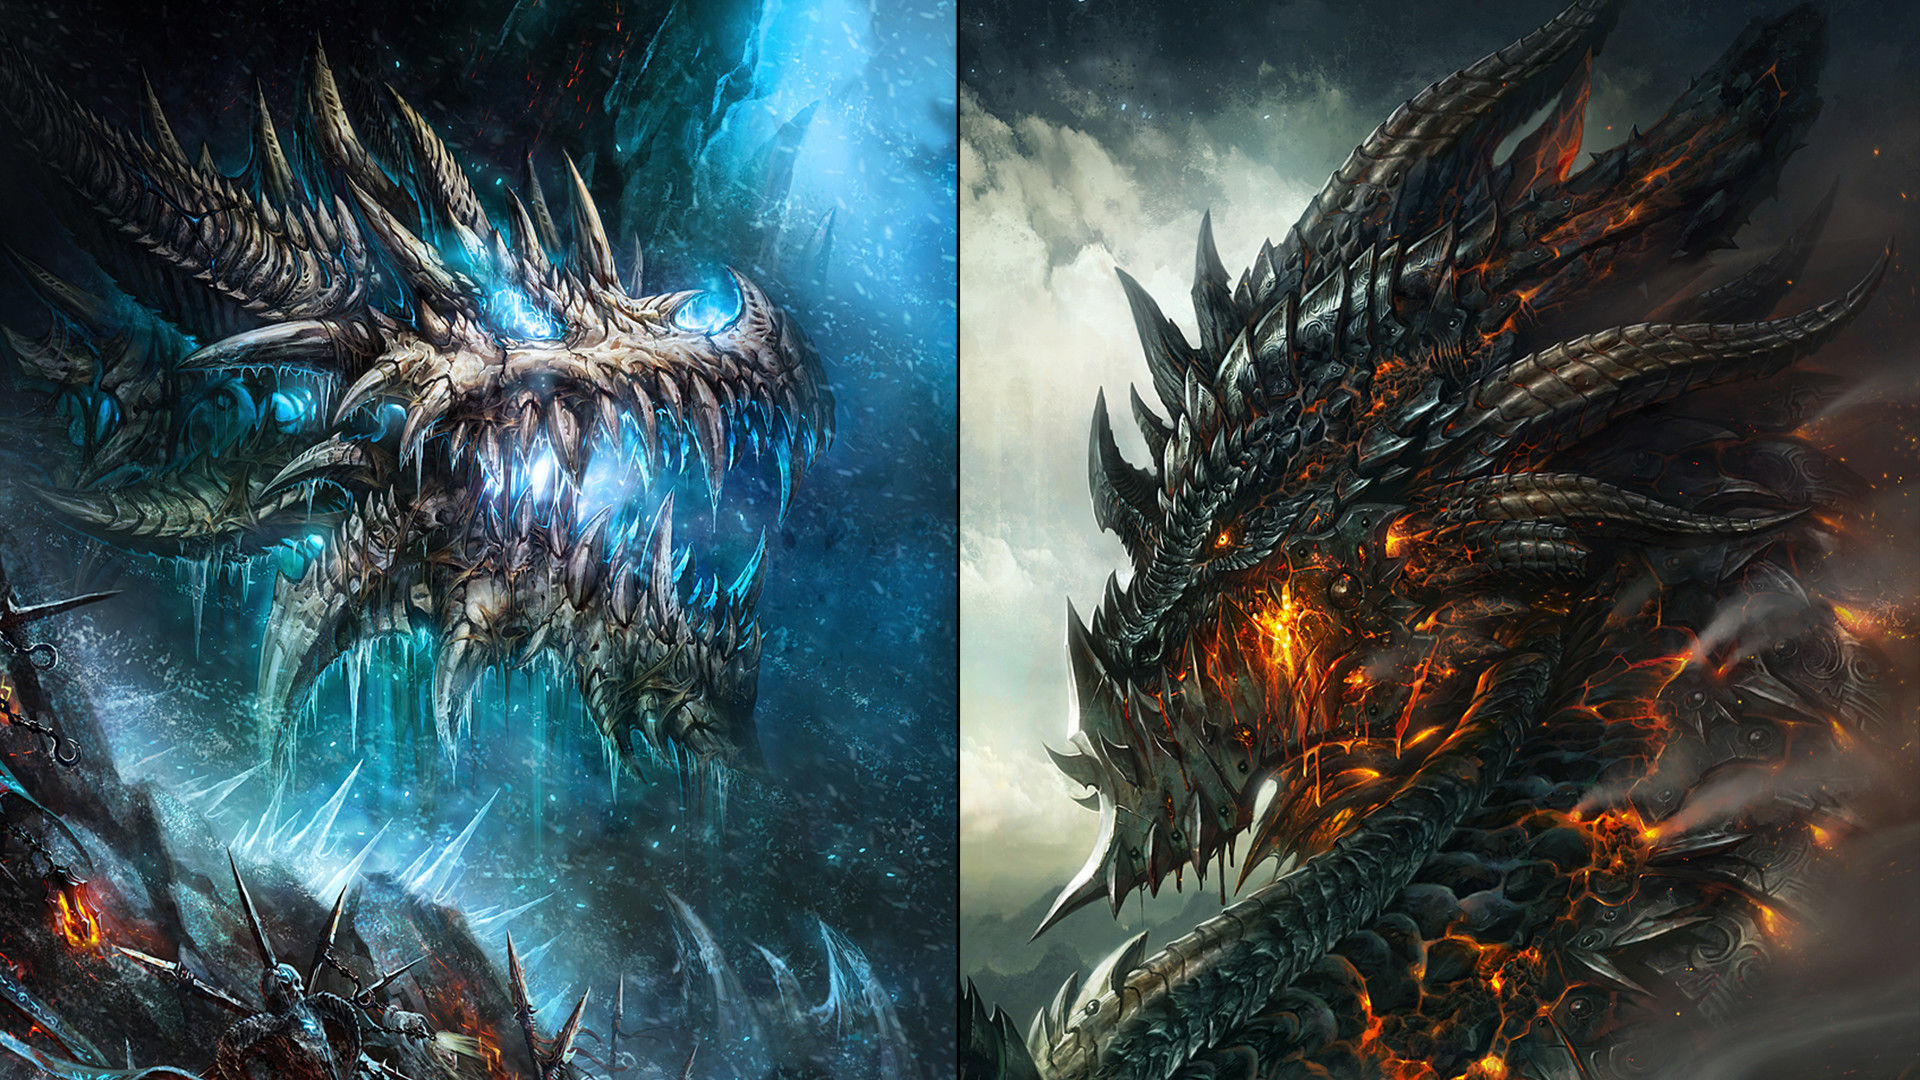 Epic Dragon Wallpaper HD Wallpapers Download Free Images Wallpaper [1000image.com]